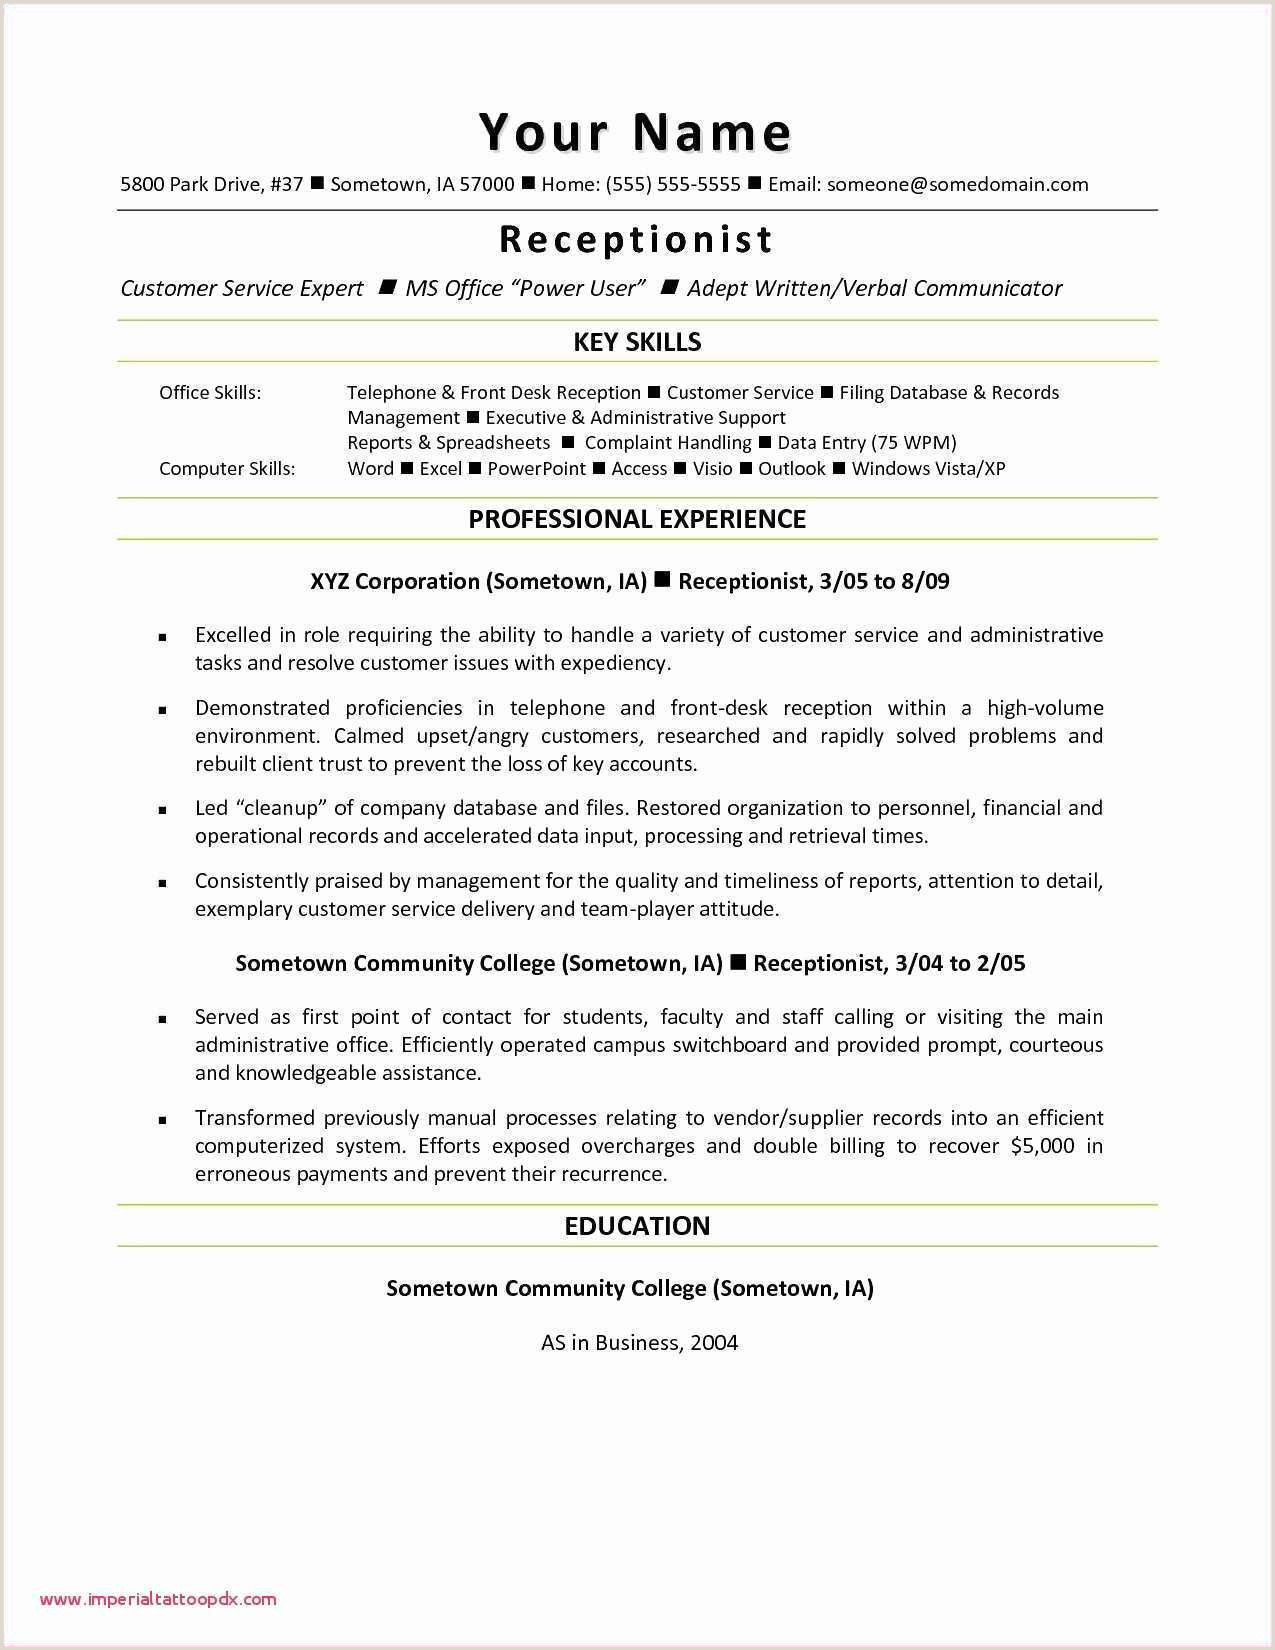 Construction Management Resume Objective Construction Management Resume – Kizi Games